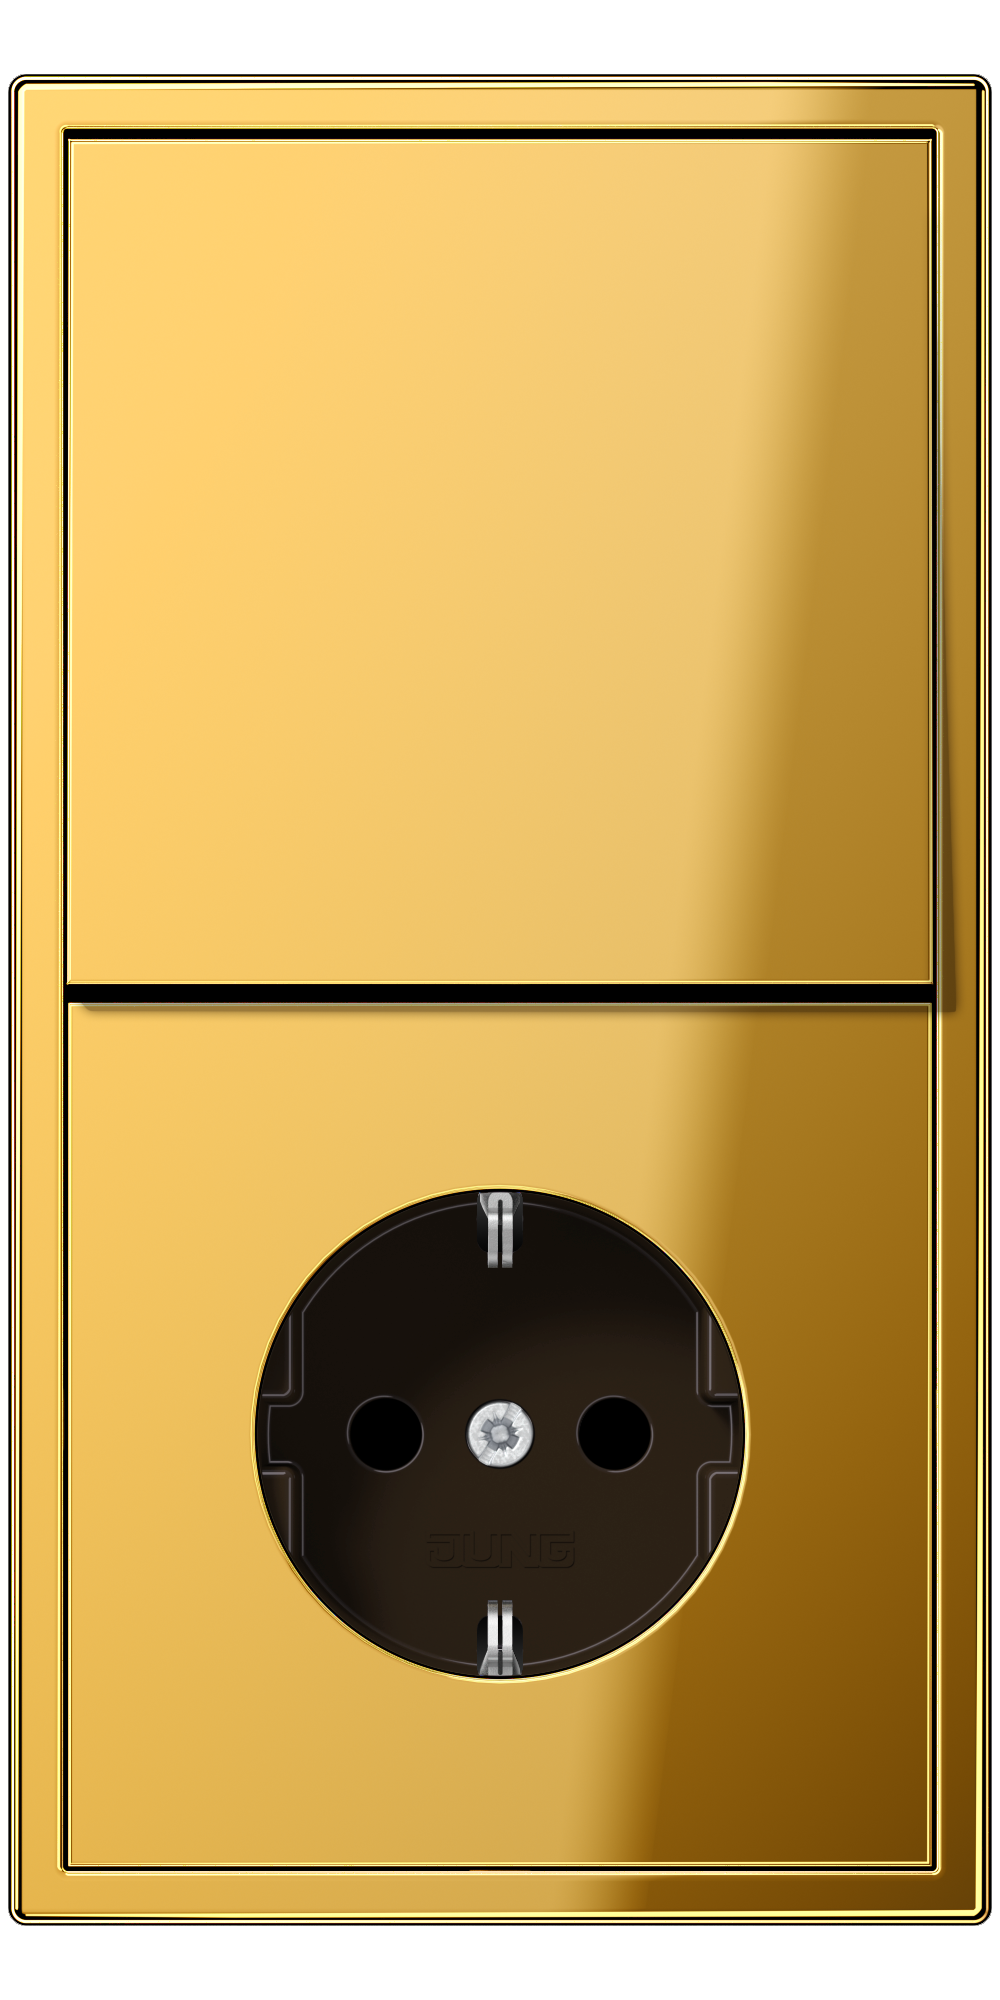 JUNG_LS990_gold-coloured_switch_socket